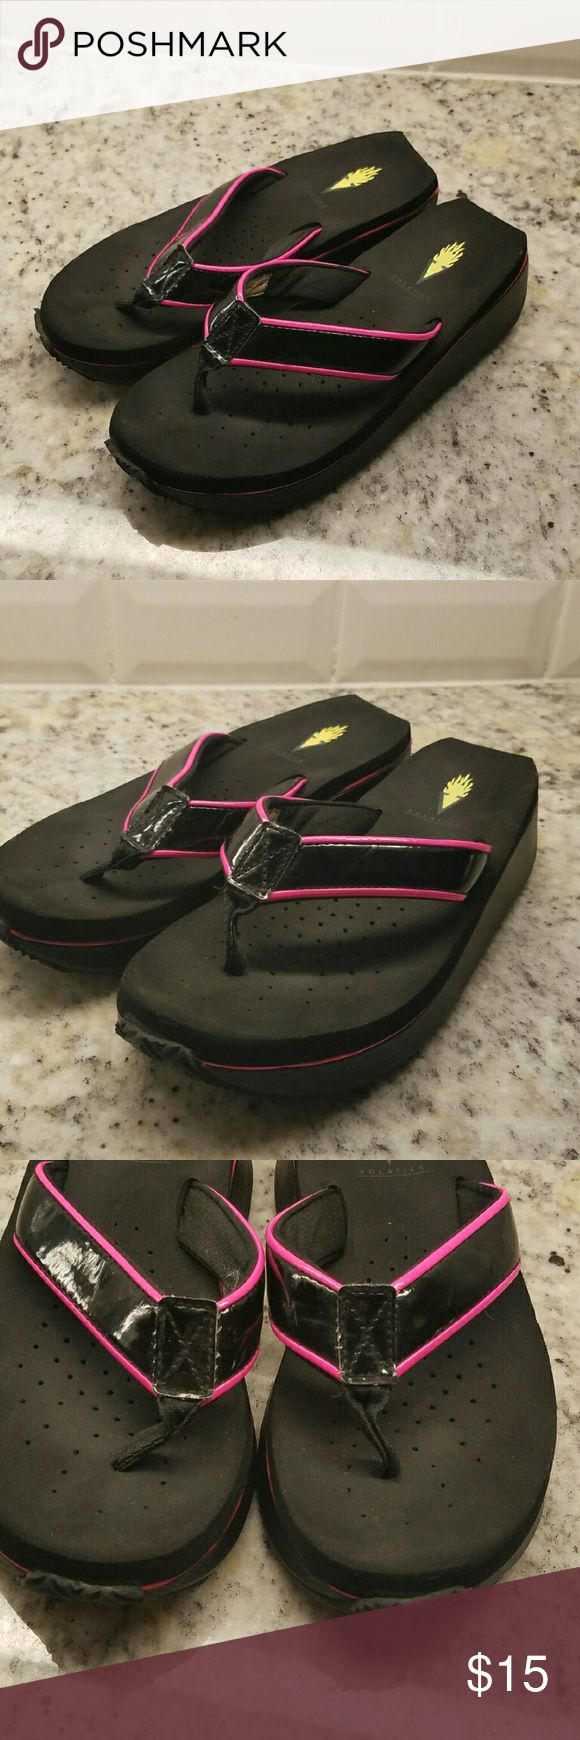 Volatile Flip Flops Black and hot pink. Wedge. Comfy. Volatile Shoes Sandals